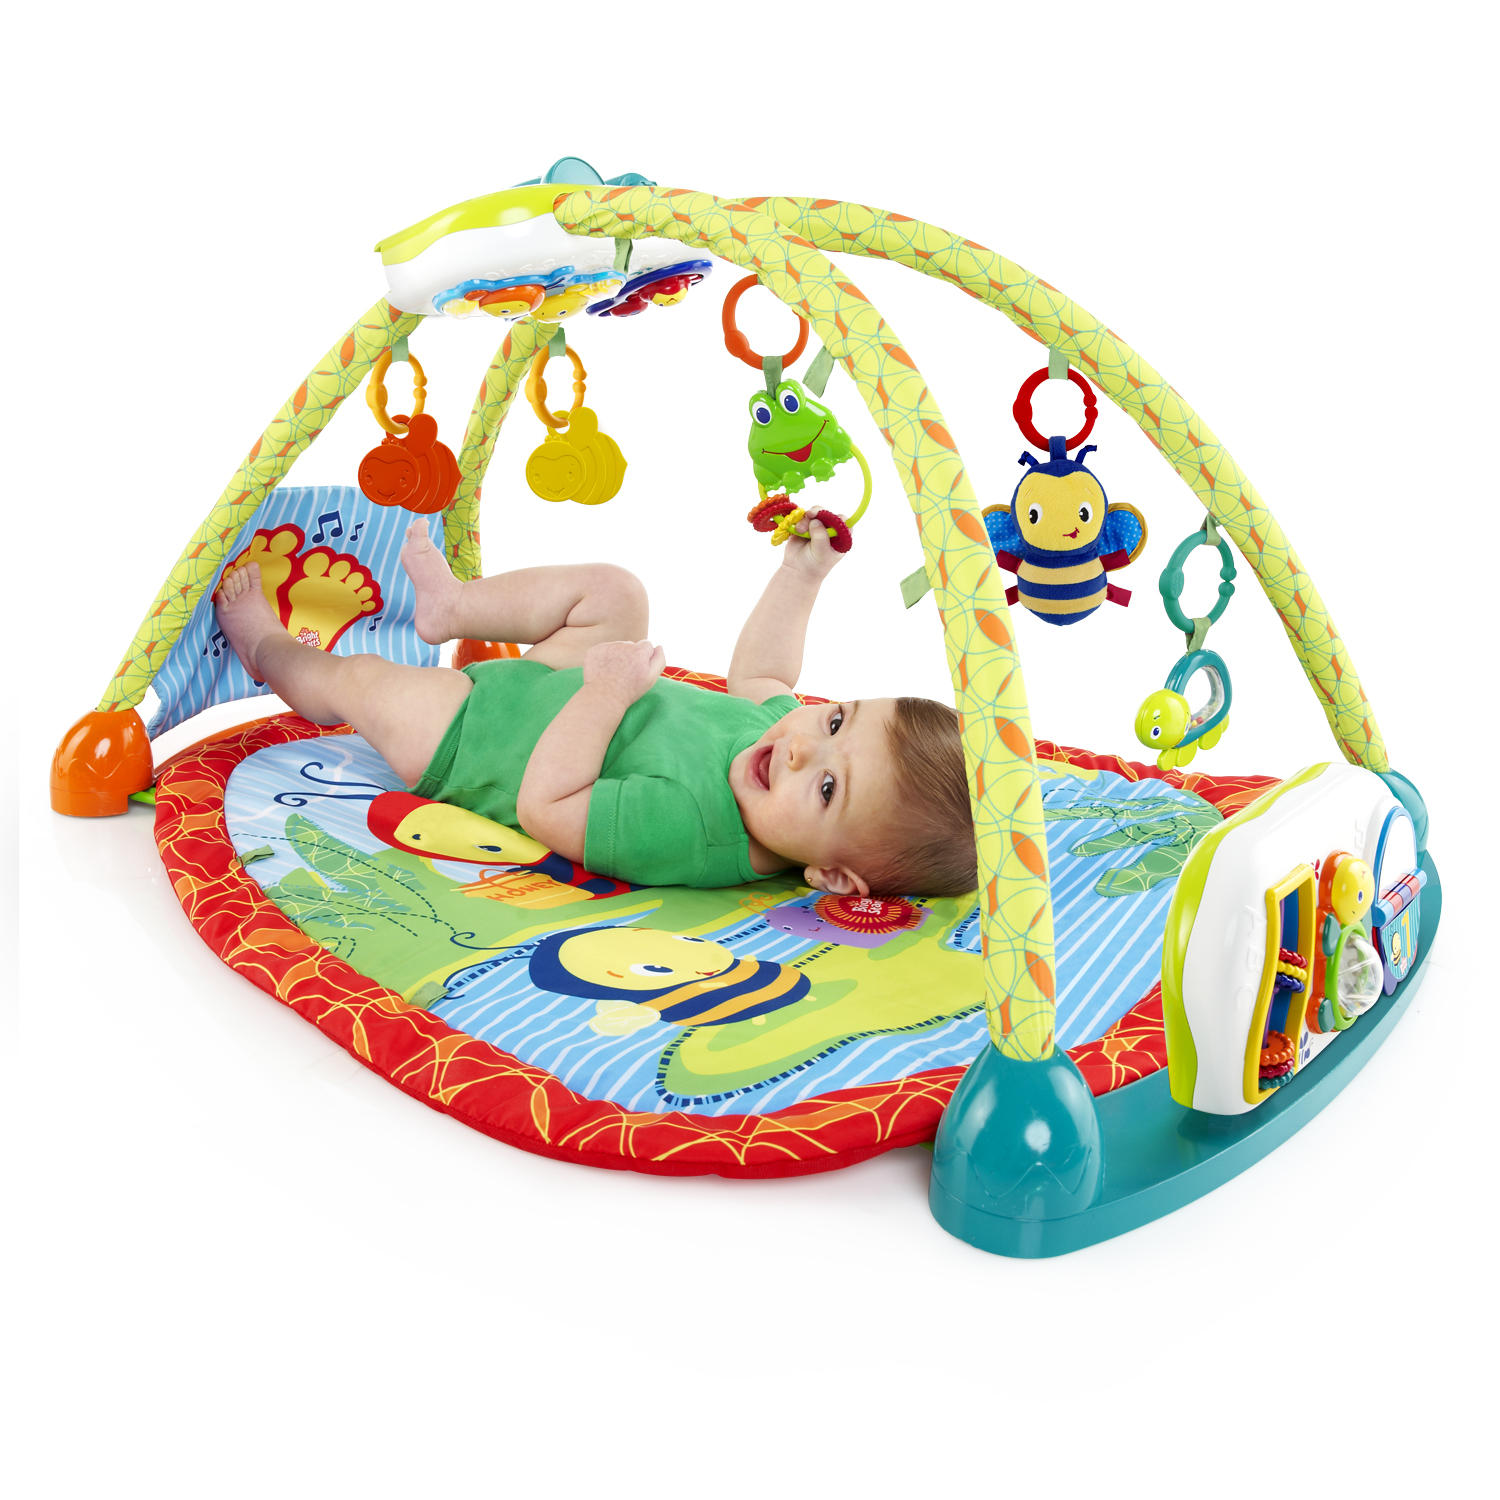 Bright Starts 2 in 1 ConvertMe Activity Table Gym Walmart